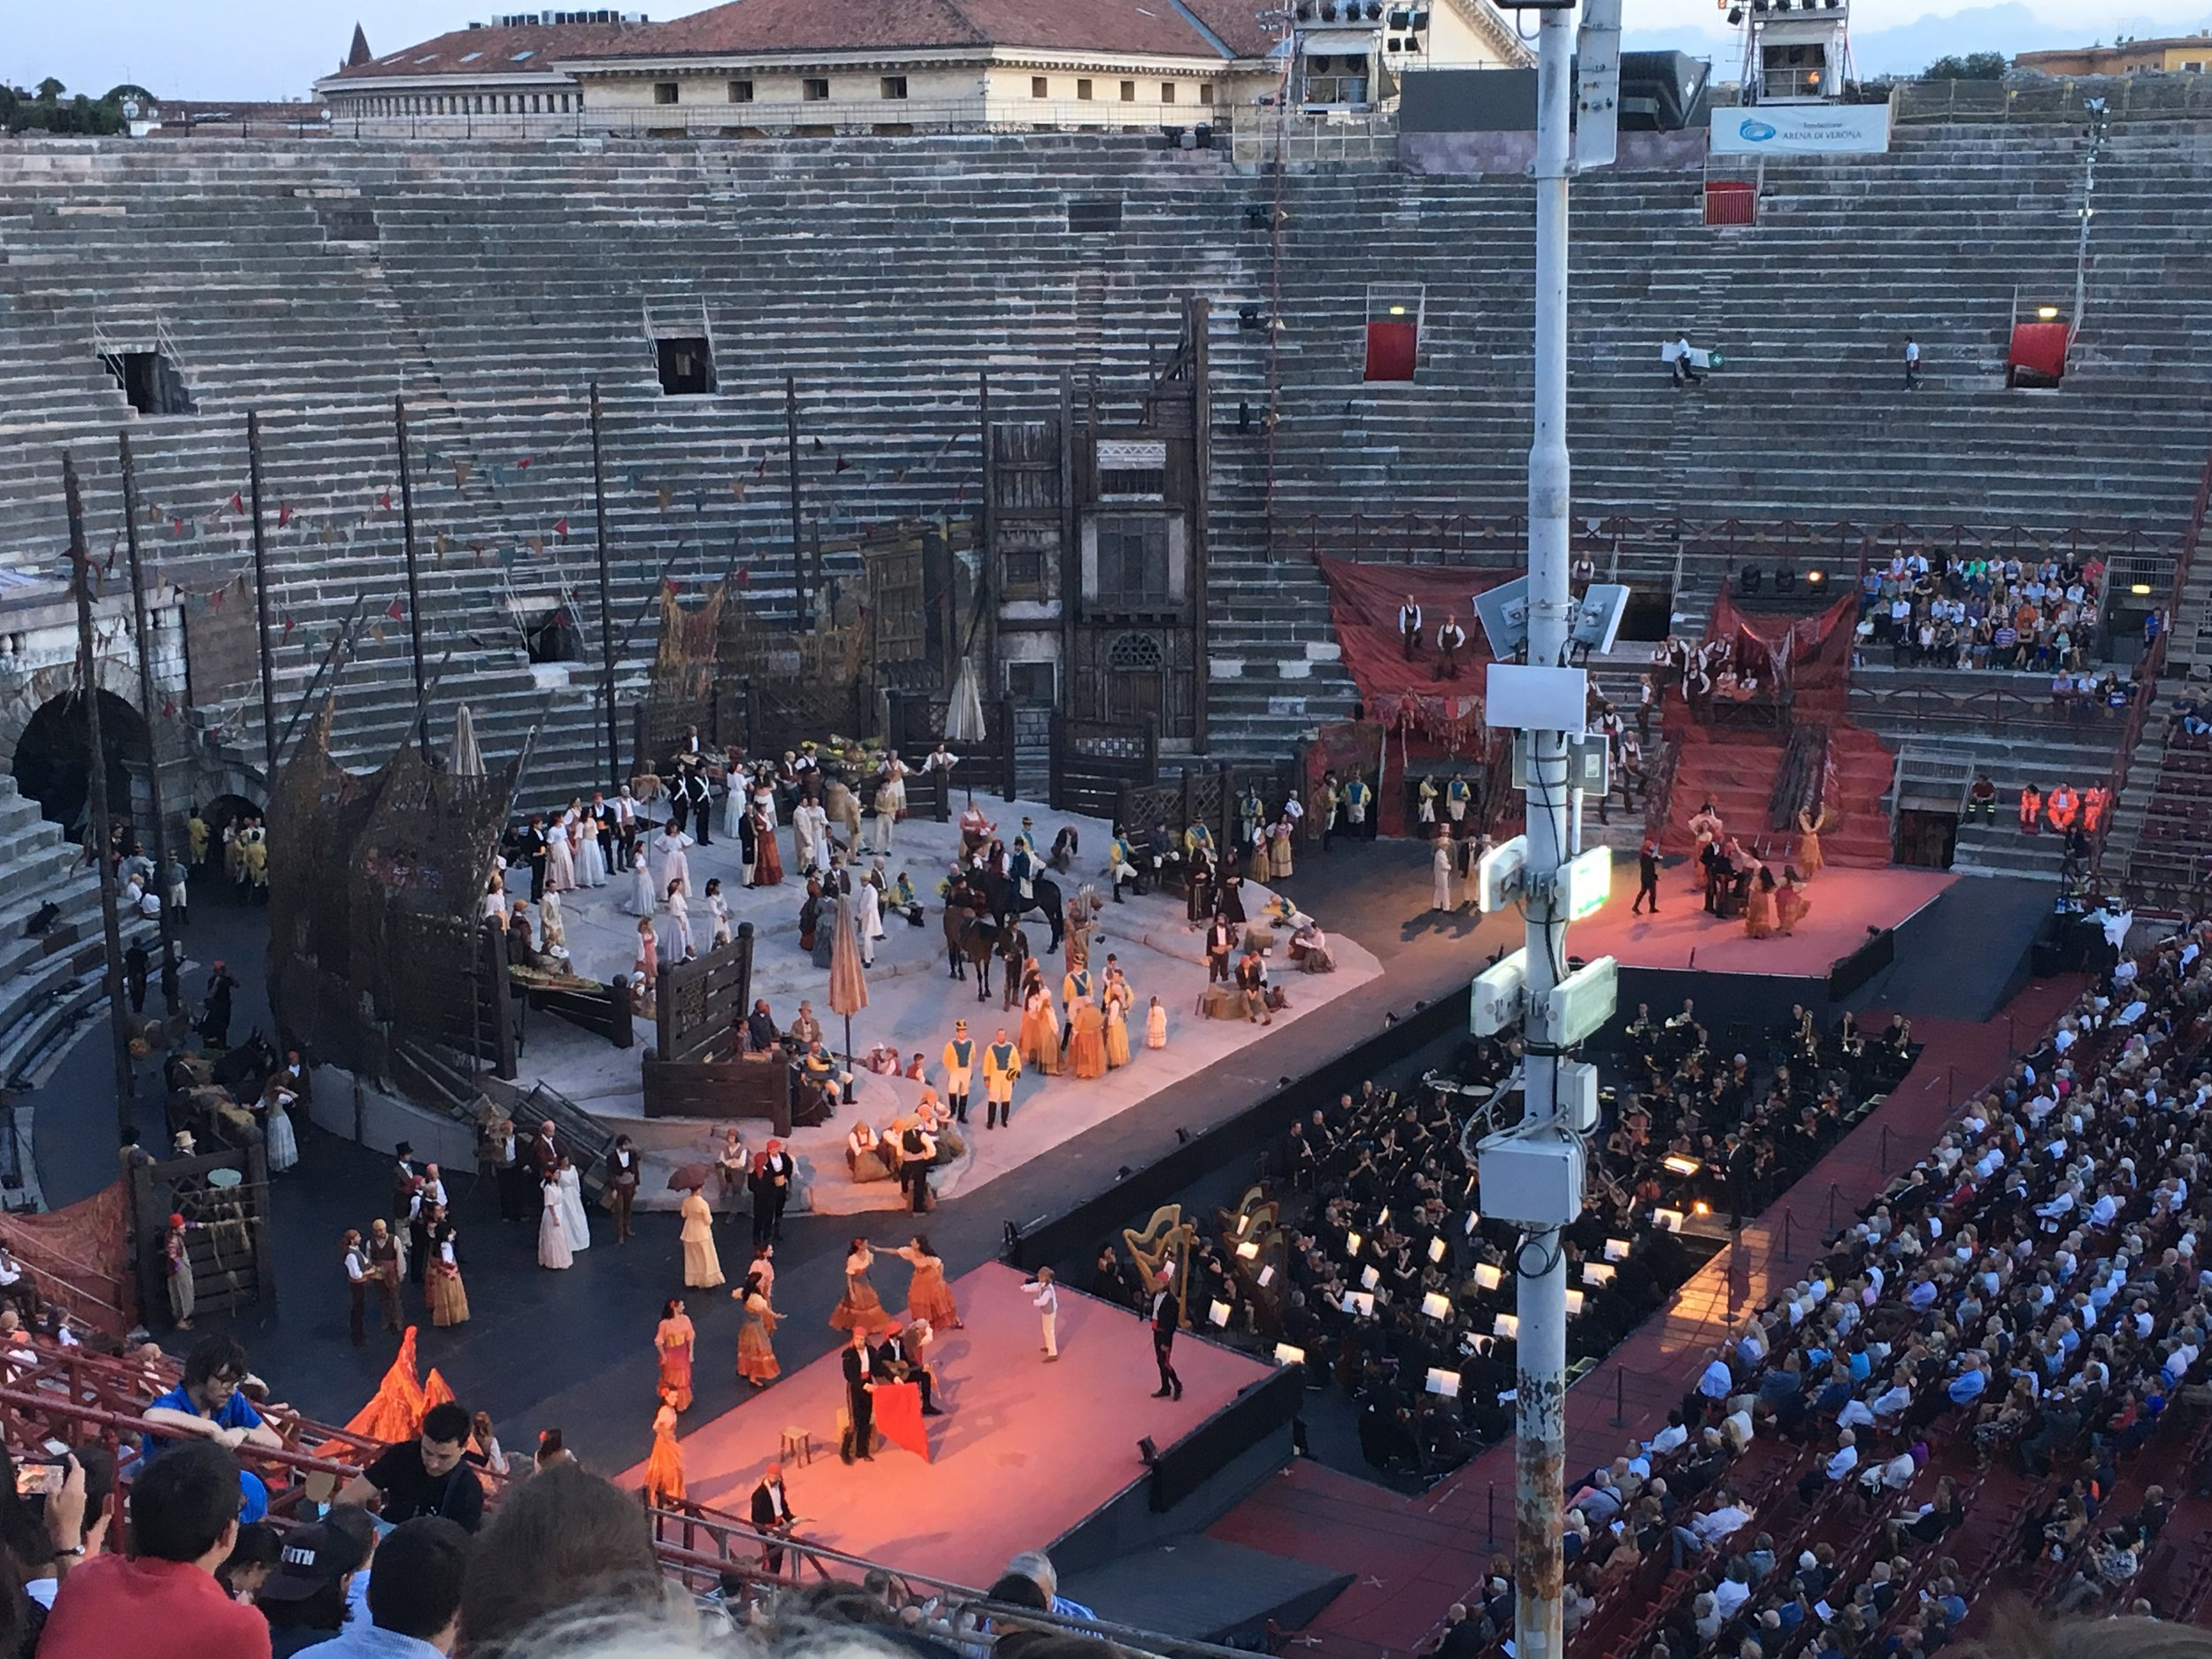 A production of Carmen in the Arena